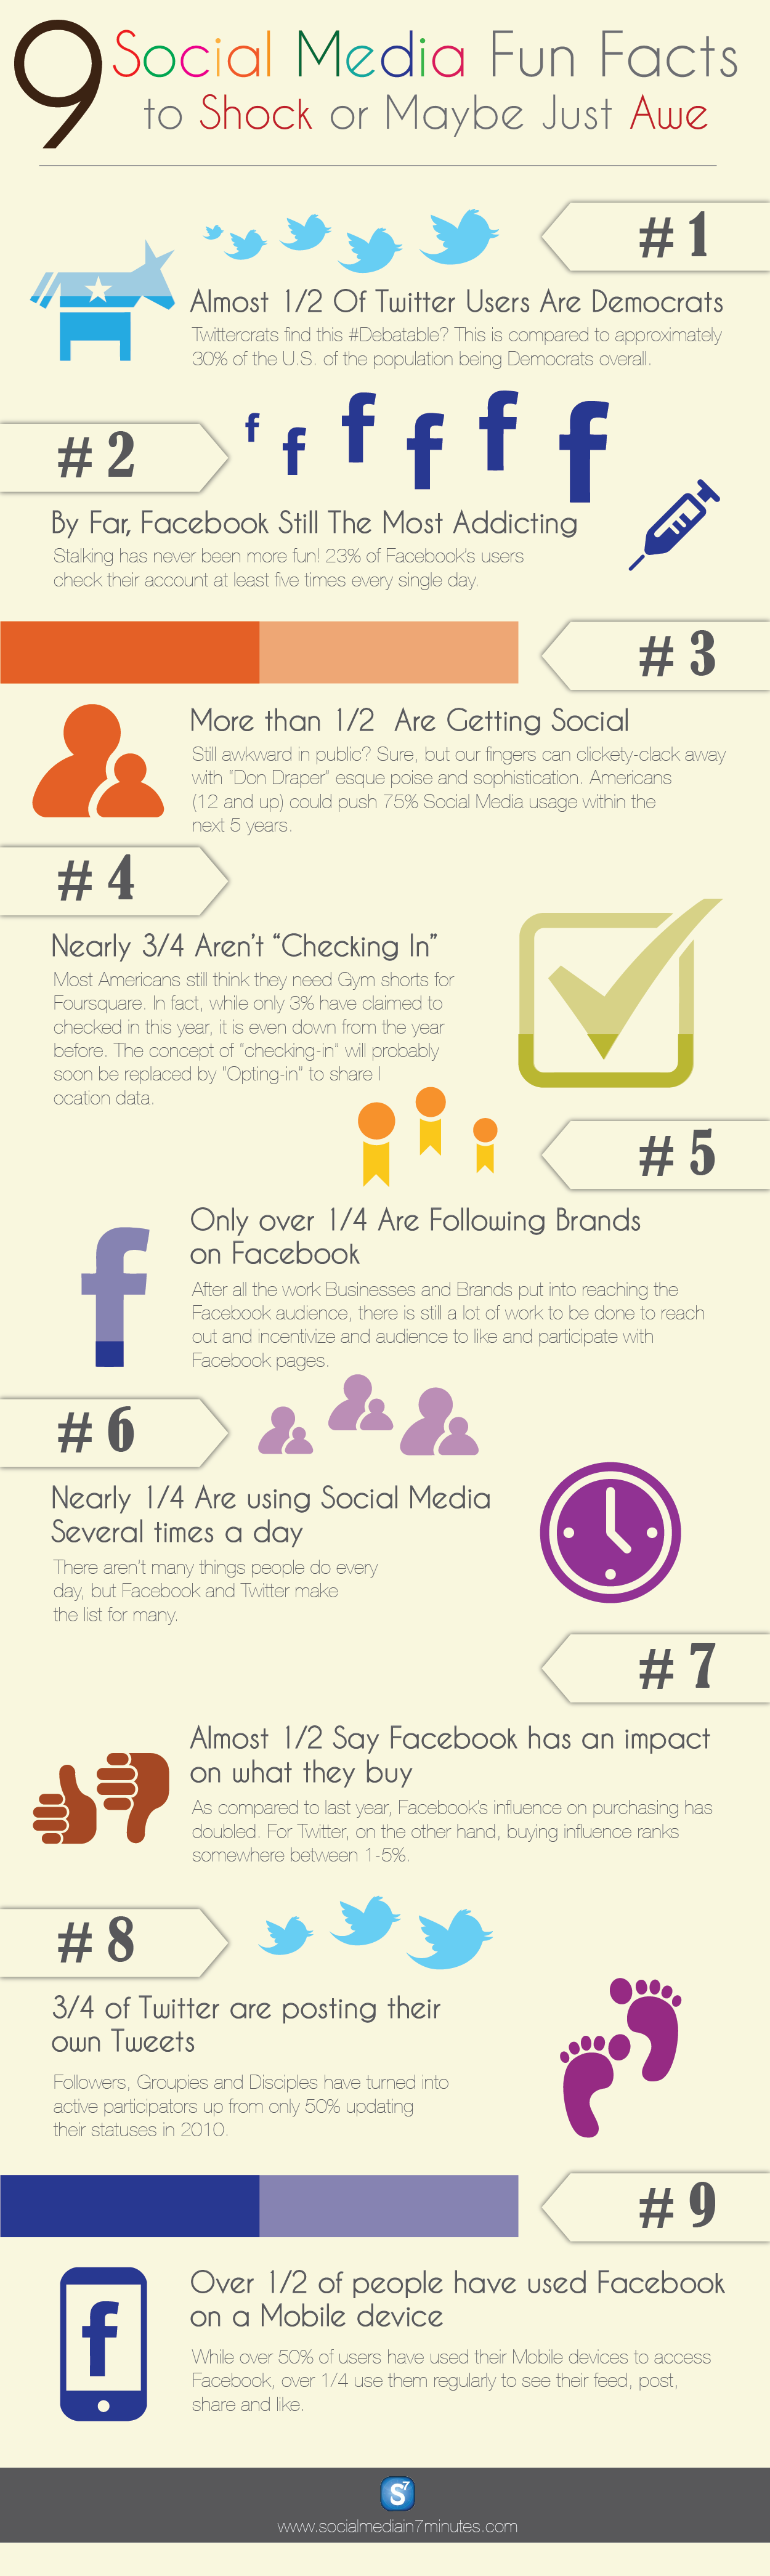 9 shocking social media fun facts